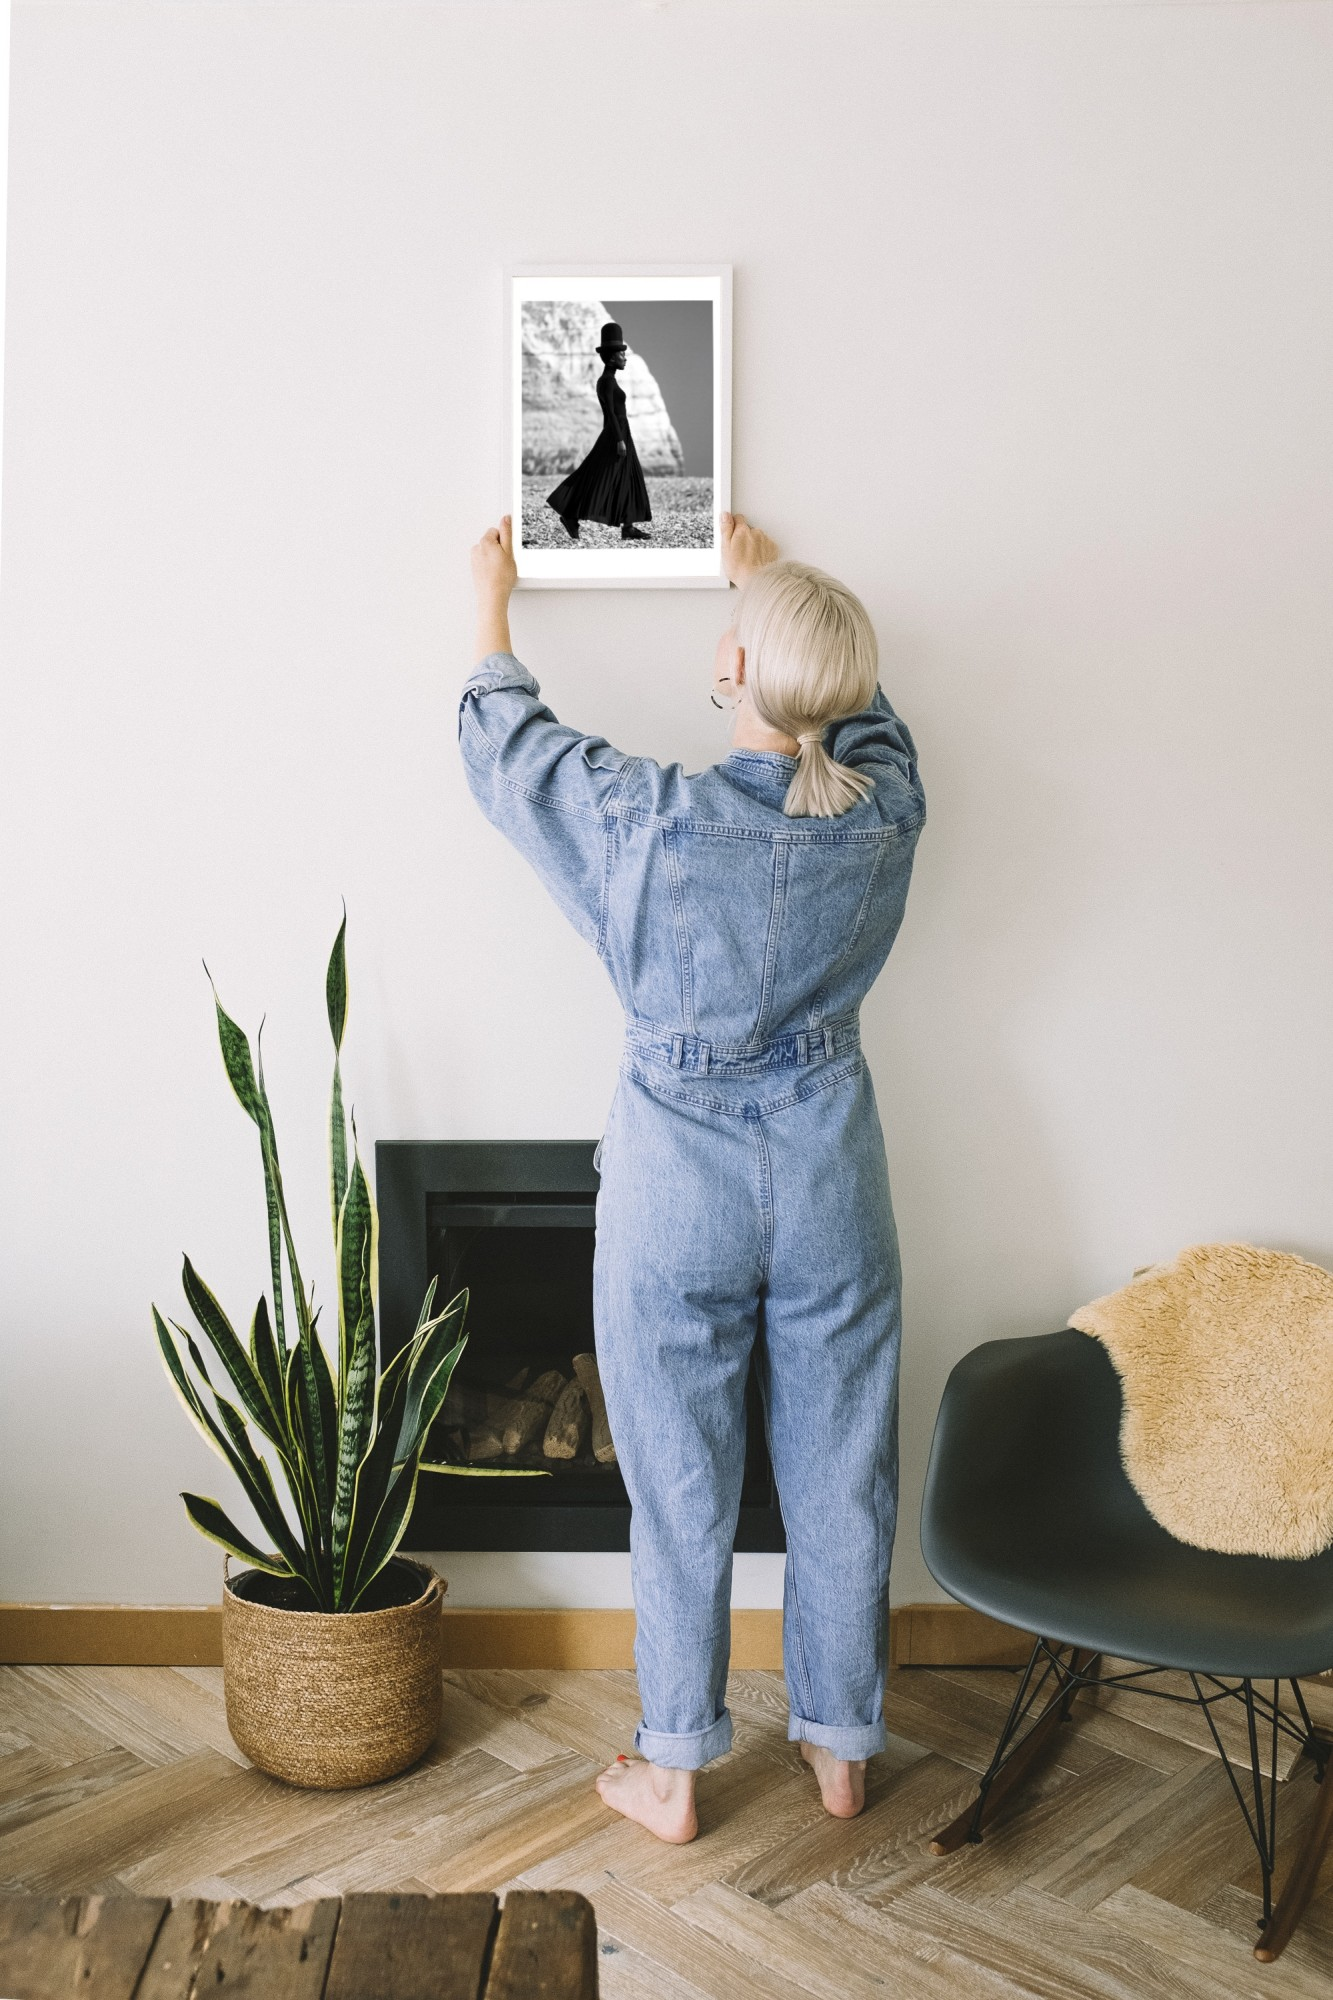 Sarah Williams co-founder Darklight Art | How to hang art in a rental